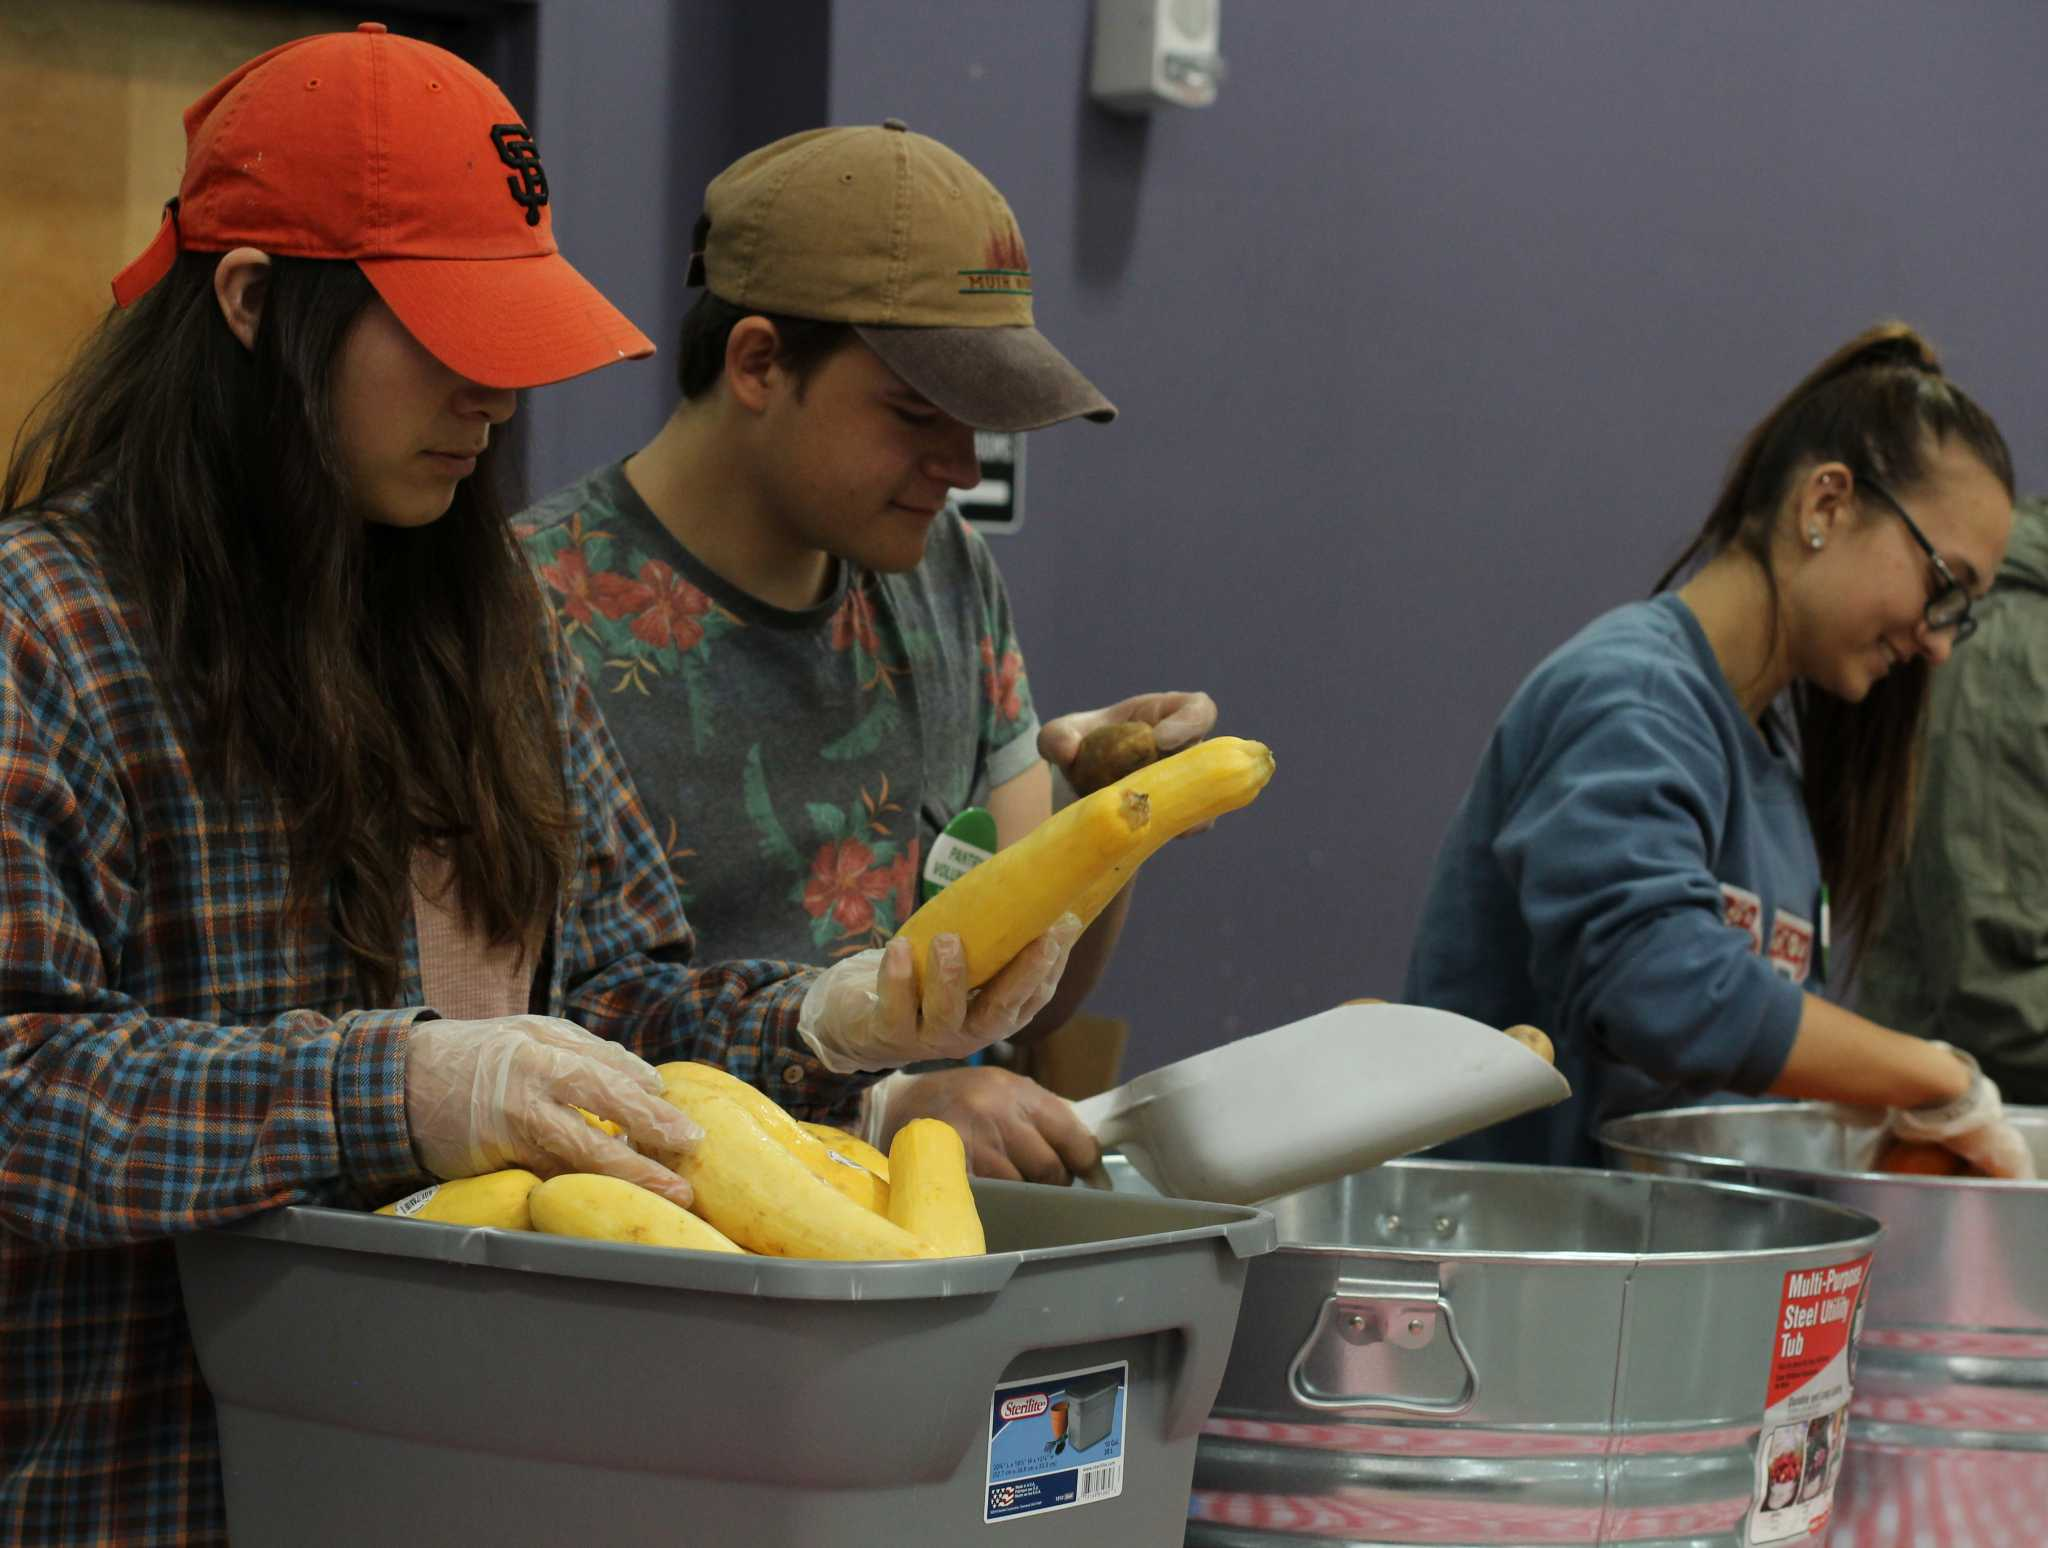 Allyson Borunda (left), Boris Ümarik (middle) and Alyssa Llewllyn (right), inspect and sort produce for the first food pantry at SF State. Associated Students Incorporated will be distributing food for students in need at the Library Annex I Student Event Center starting Monday February 27, 2017 in San Francisco, Calif. (Alina Castillo/Xpress)